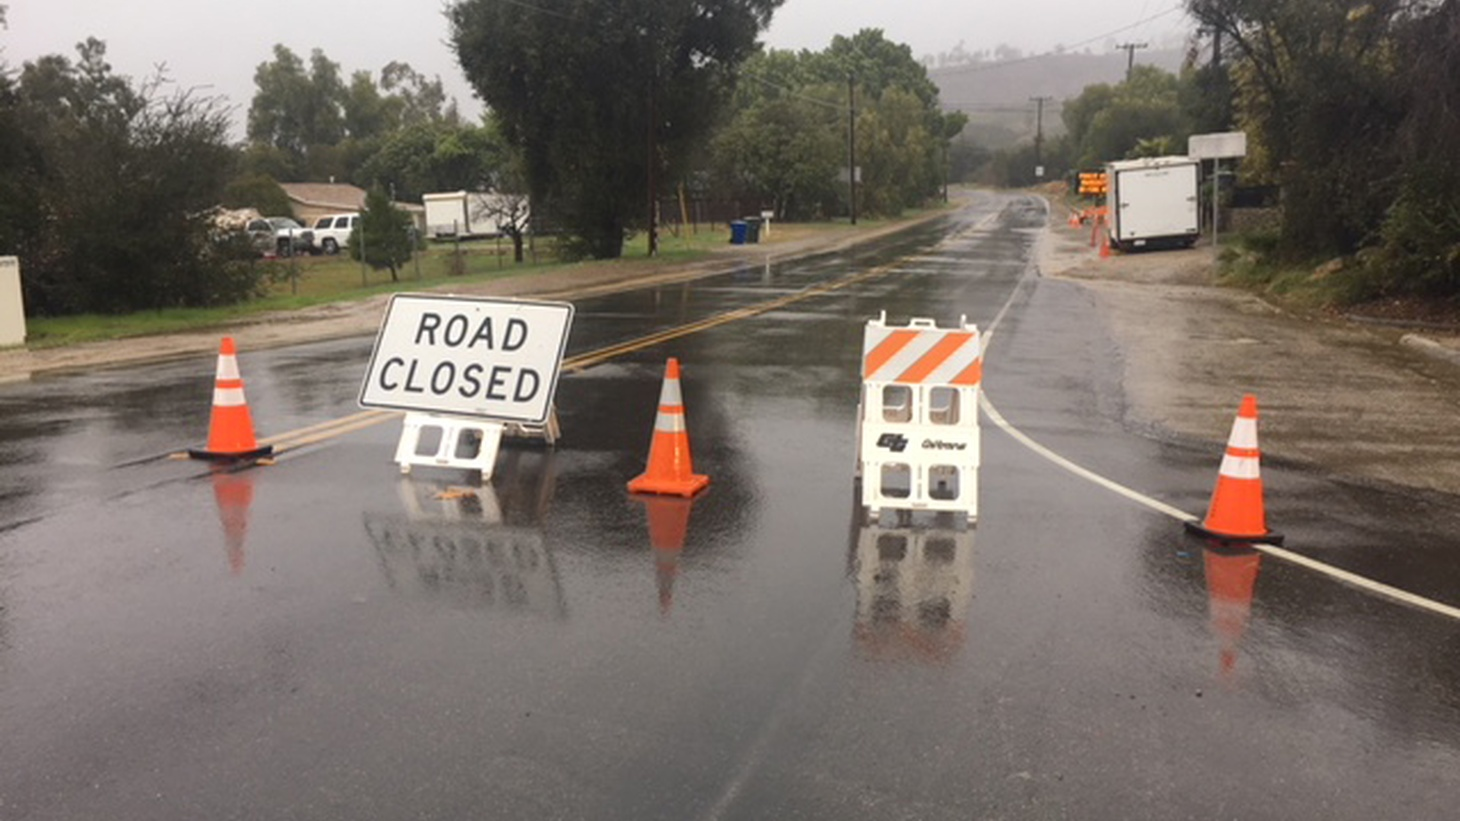 Another storm swept through Santa Barbara and Ventura counties Thursday night, and many had to evacuate. We get an update and learn how rain gauges can help prepare us for the next storm.